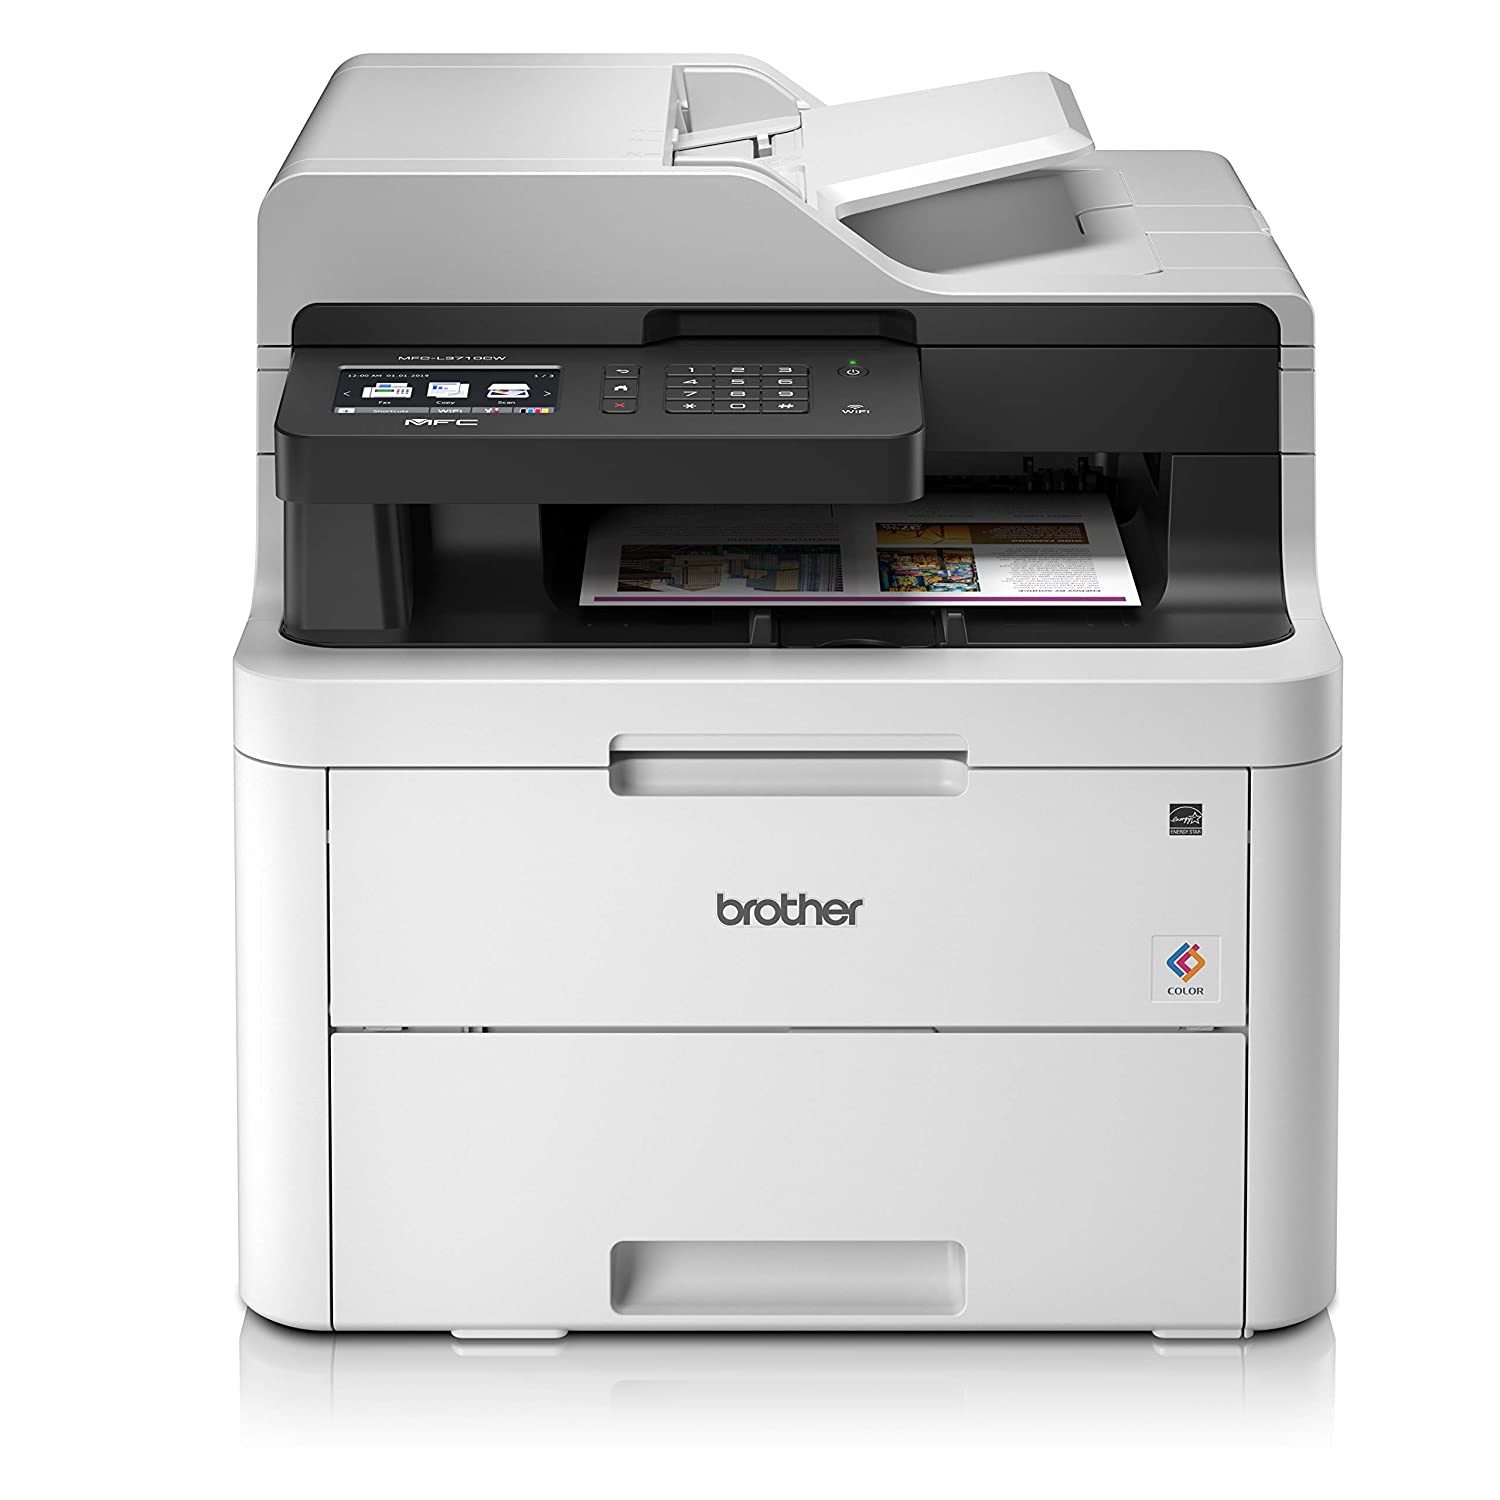 Print Wireless /& PC Connected Brother HL-3140CW Colour Laser Printer A4